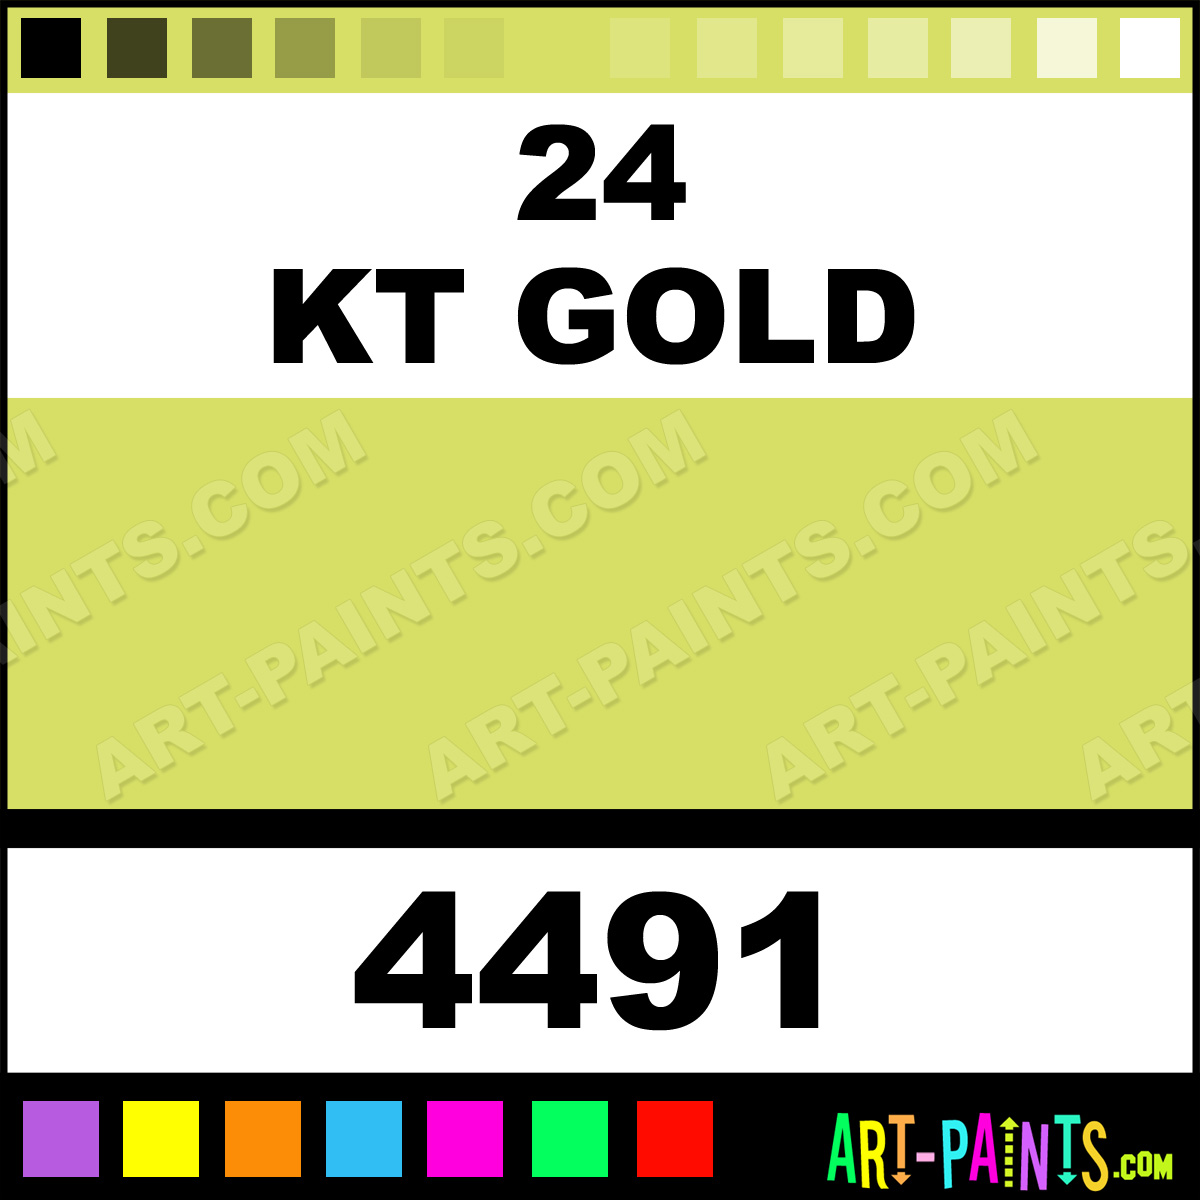 24 Kt Gold Metallic Spray Enamel Paints 4491 24 Kt